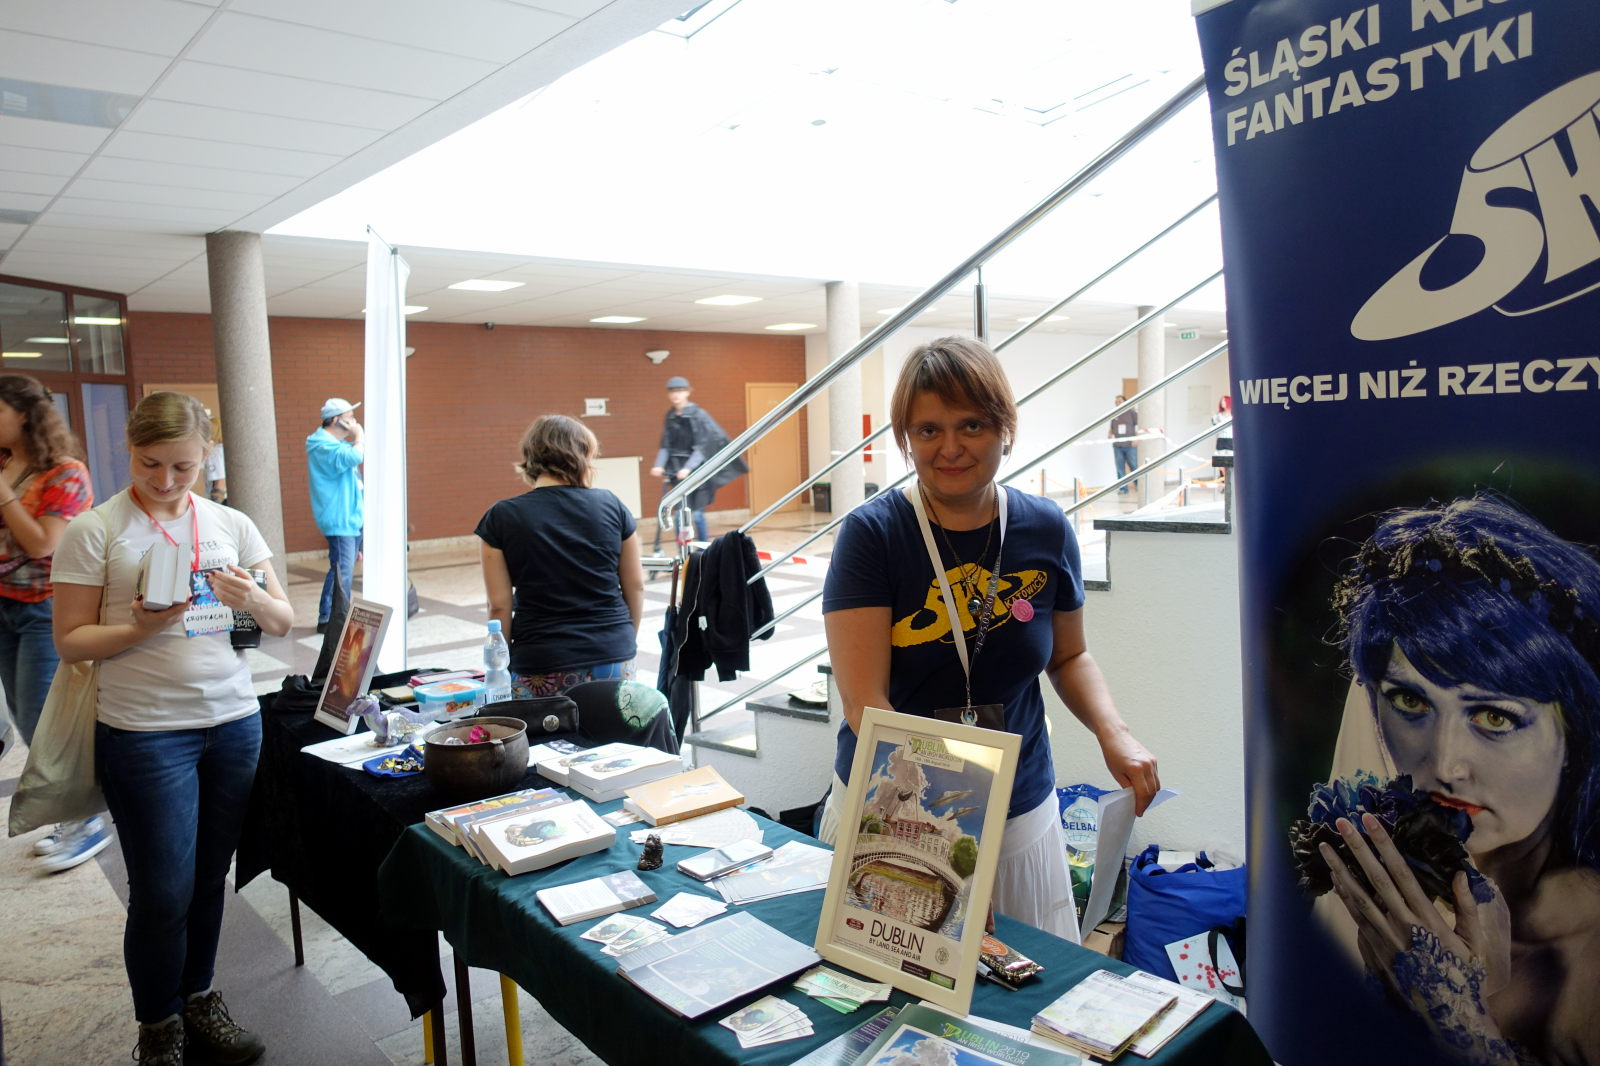 Woman standing behind the table and smiling. There are books, posters and flyers visible on tha table. To the right there is a roll-up promoting ŚKF. There are a few other peopel visible.